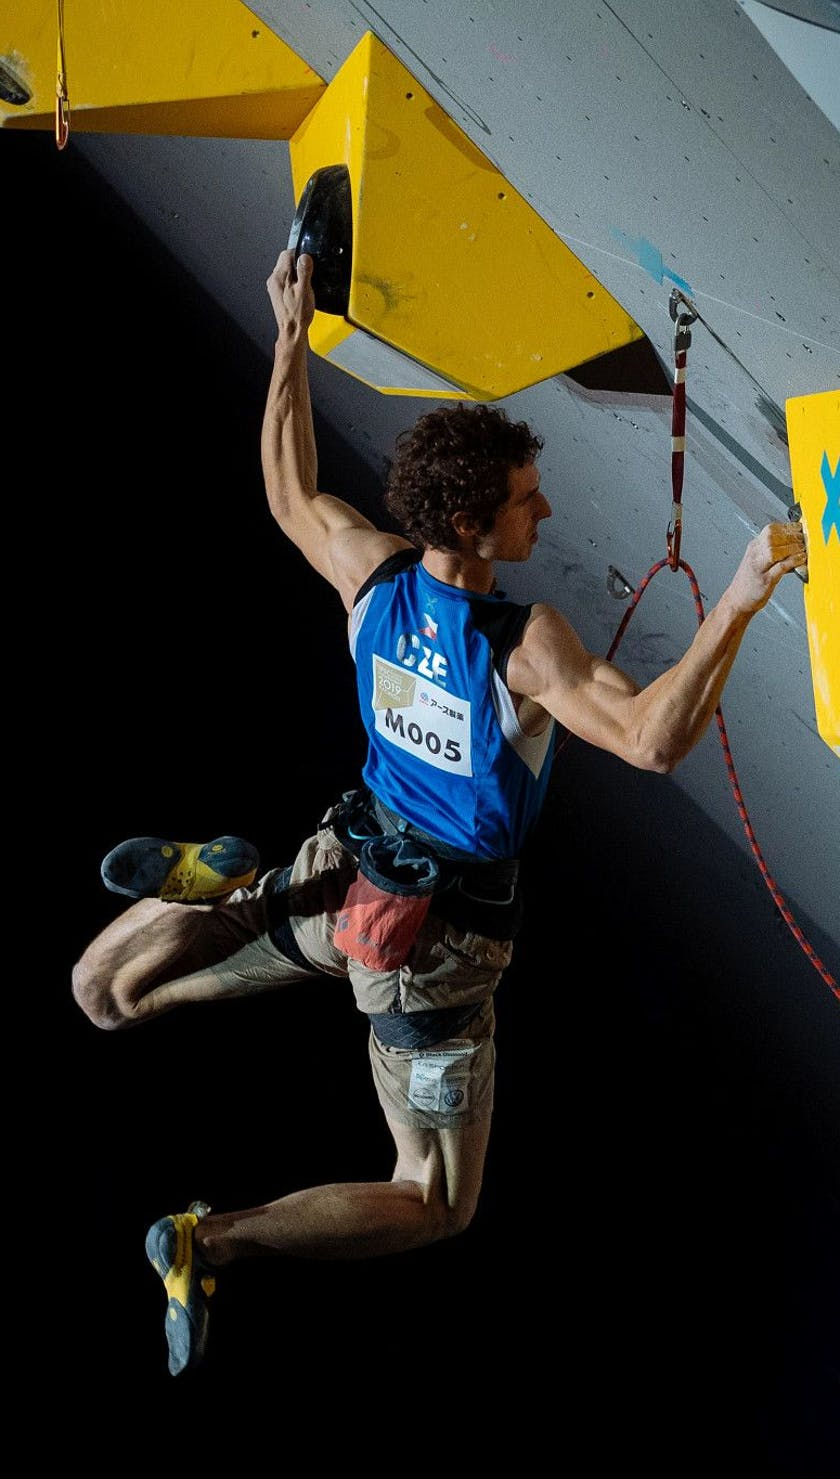 Adam Ondra wearing the Airnet Harness while climbing in a sport climbing competition